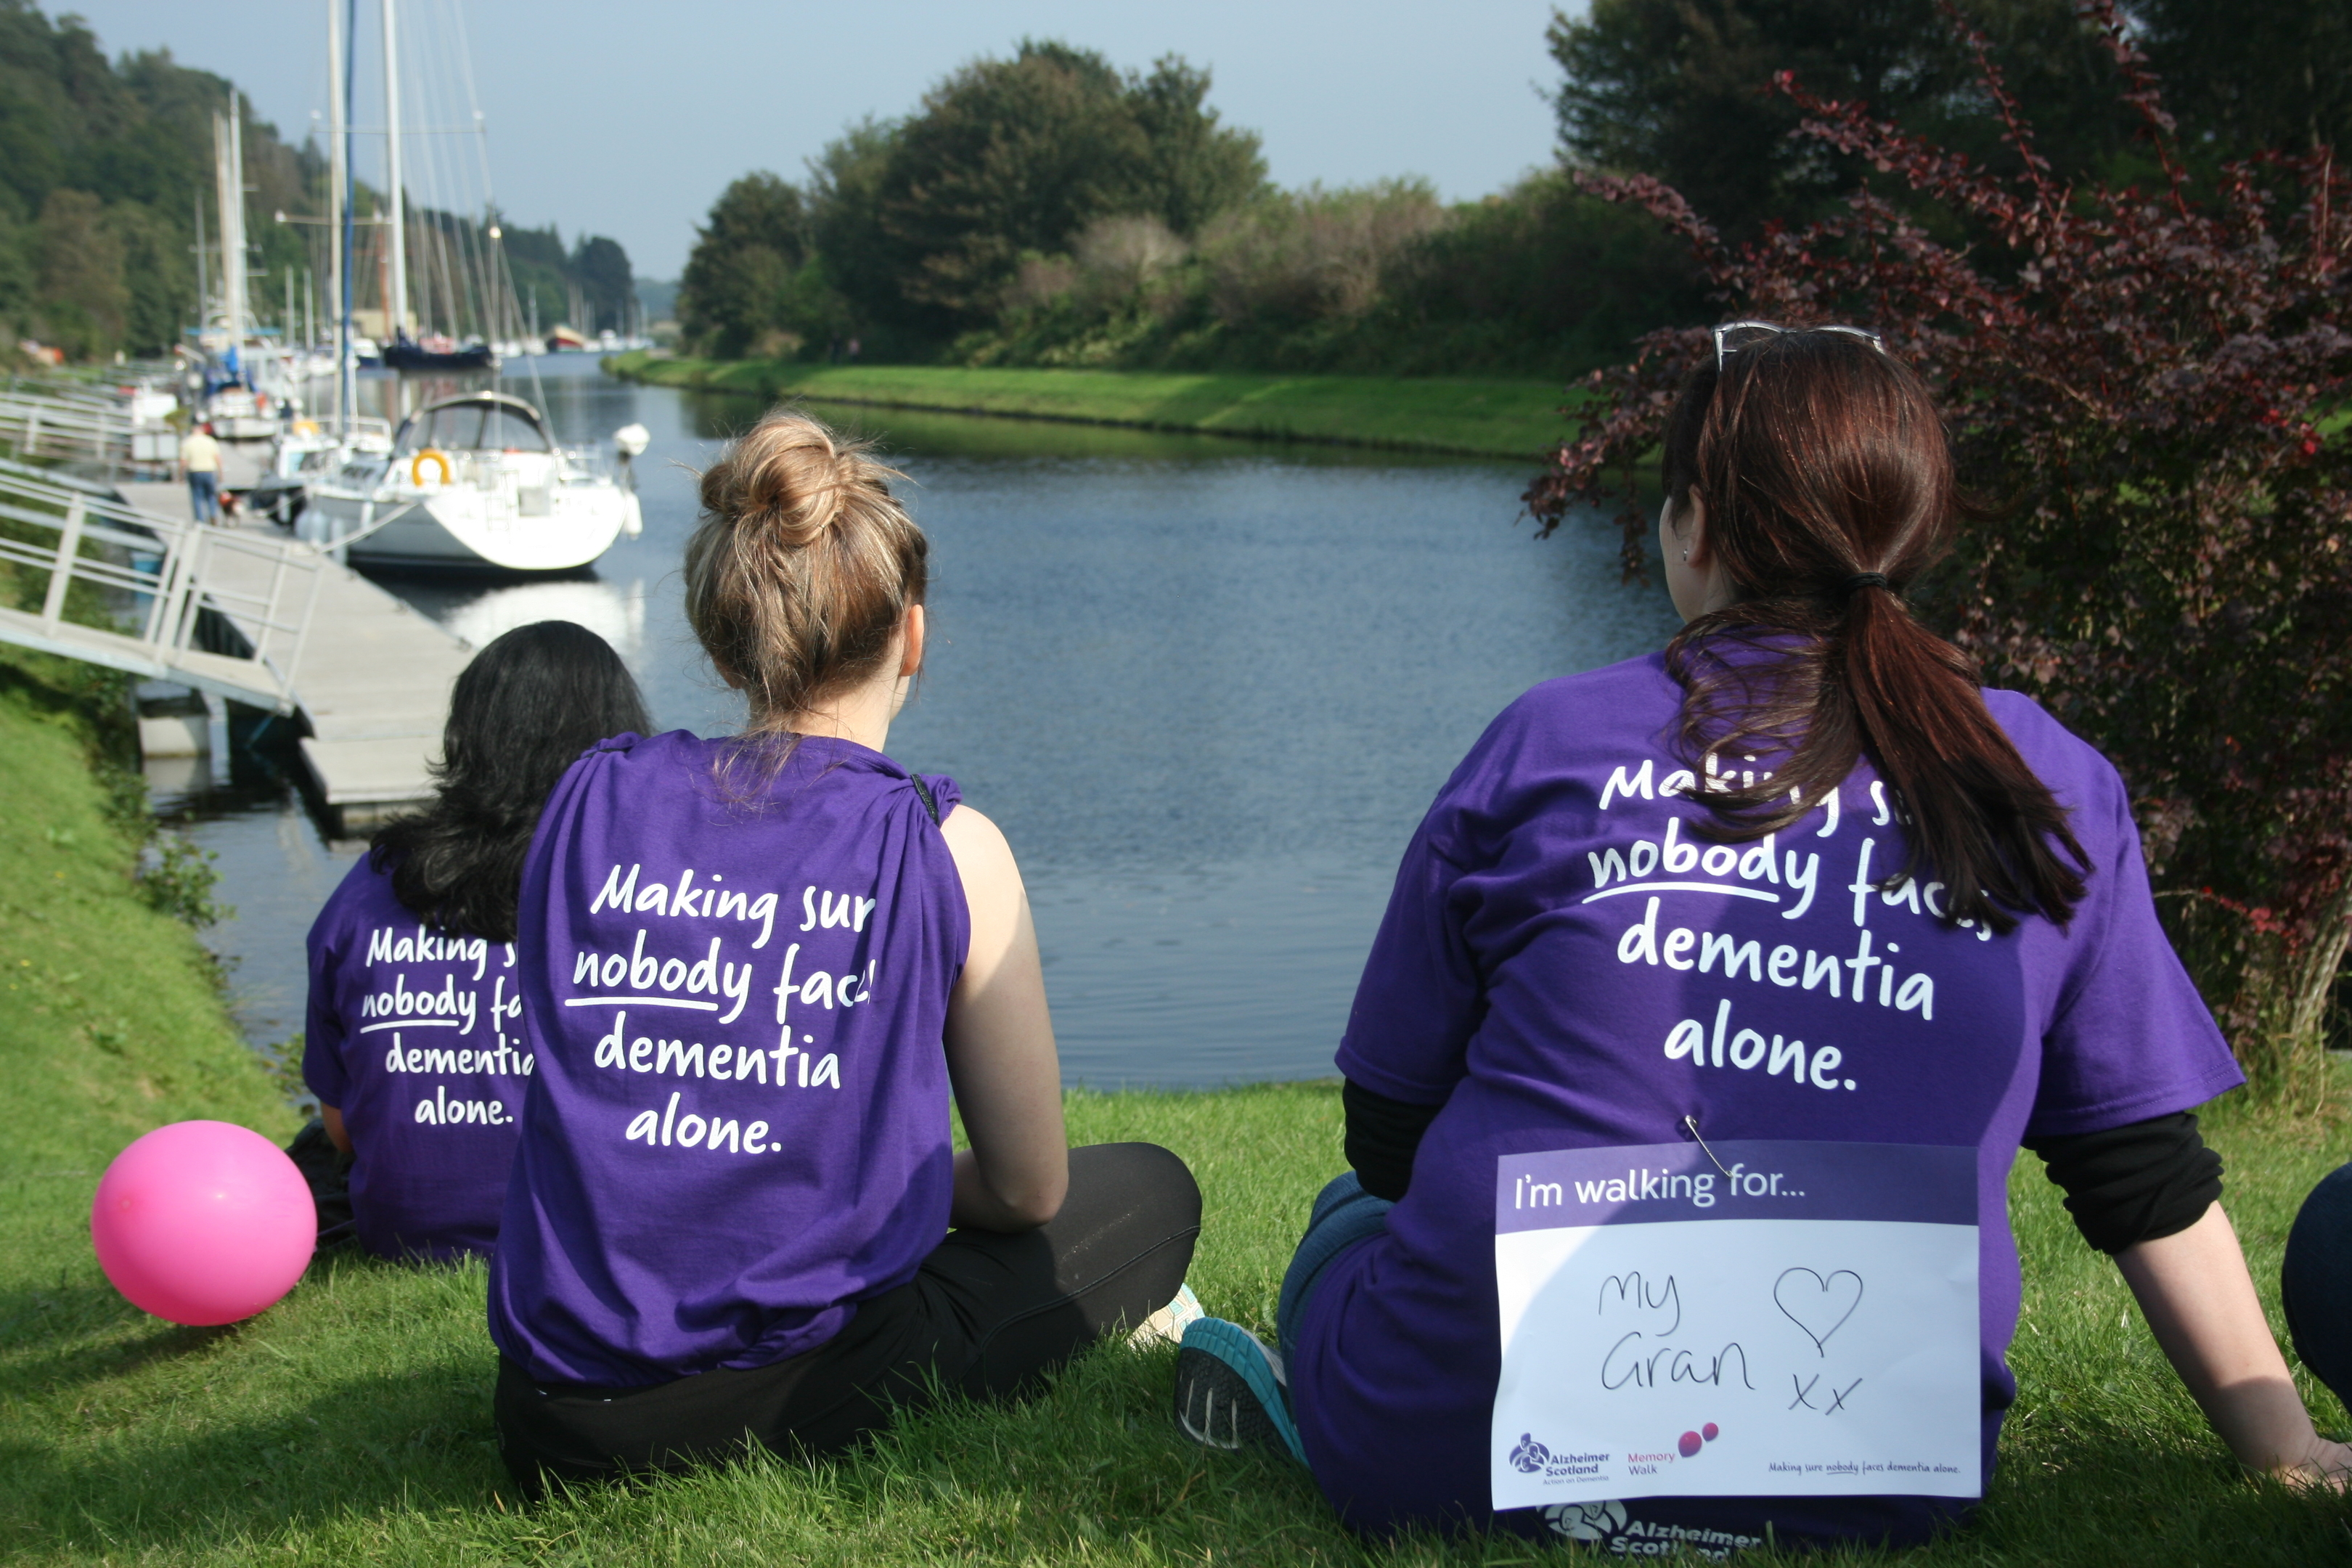 The public are being invited to take part in Saturday's Memory Walk